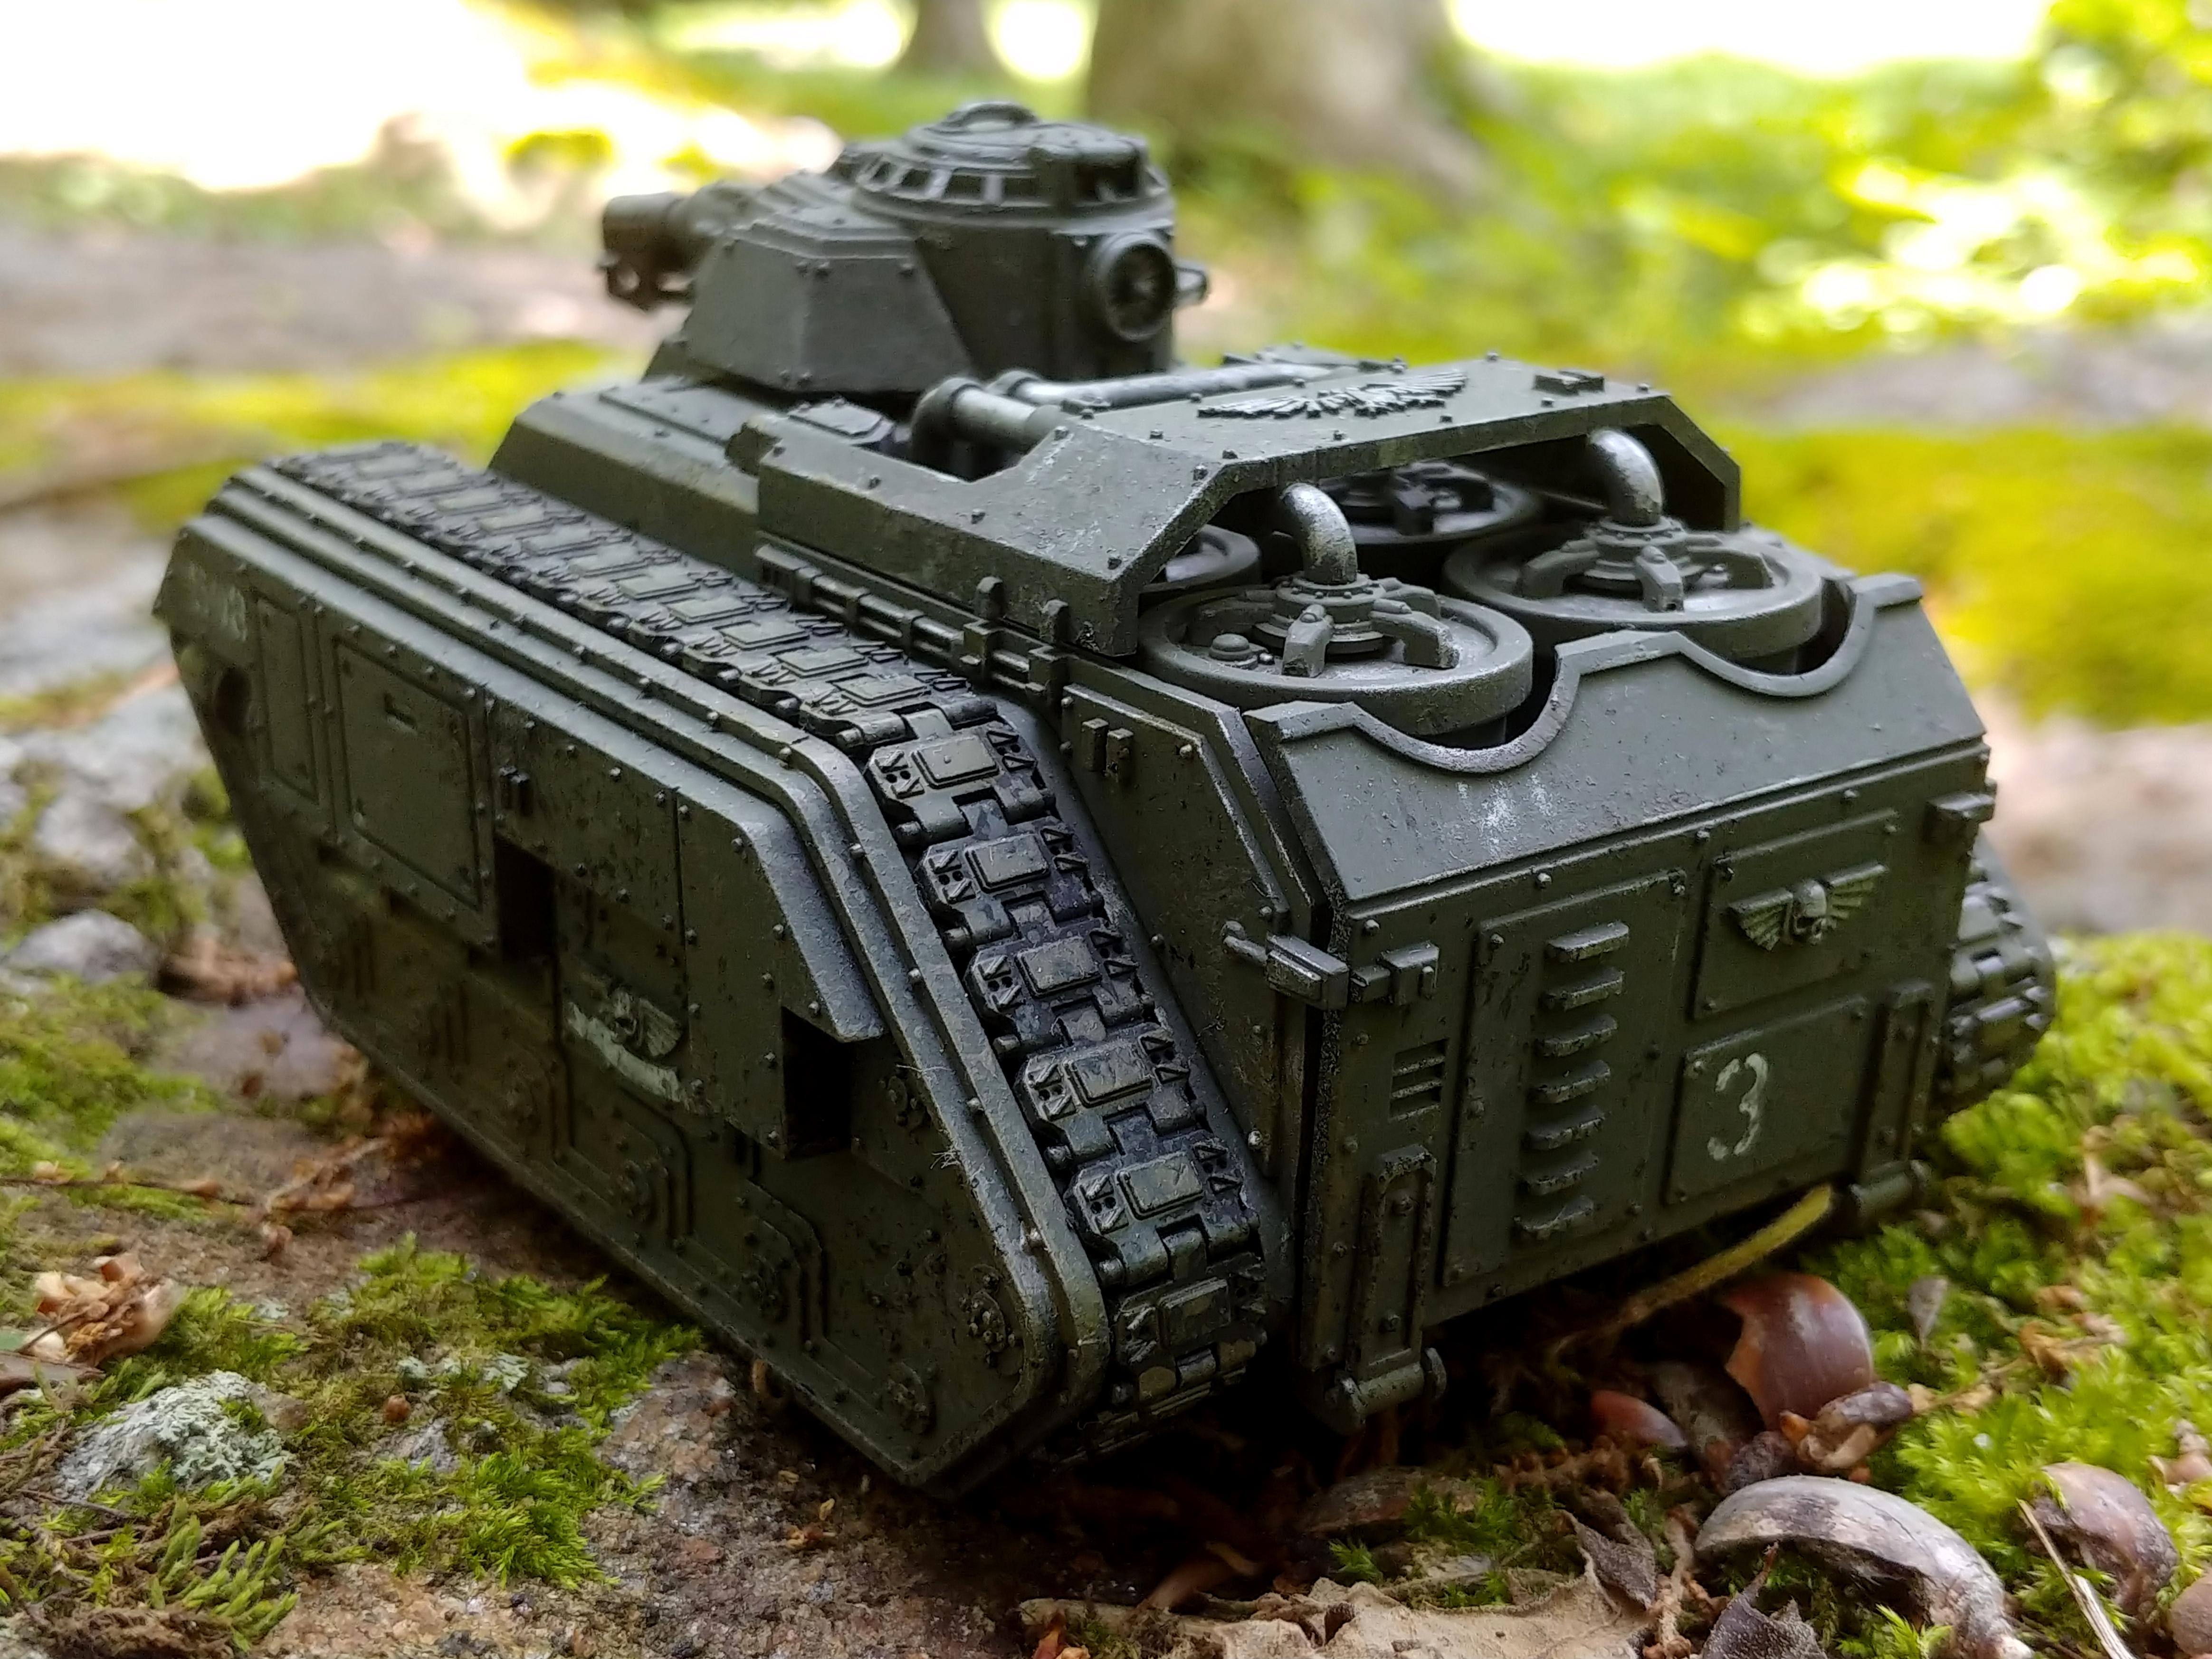 508, 508th, Astra, Guard, Hell, Hellhound, Hound, Imperial, Imperial Guard, Militarum, Scenic, Vehicle